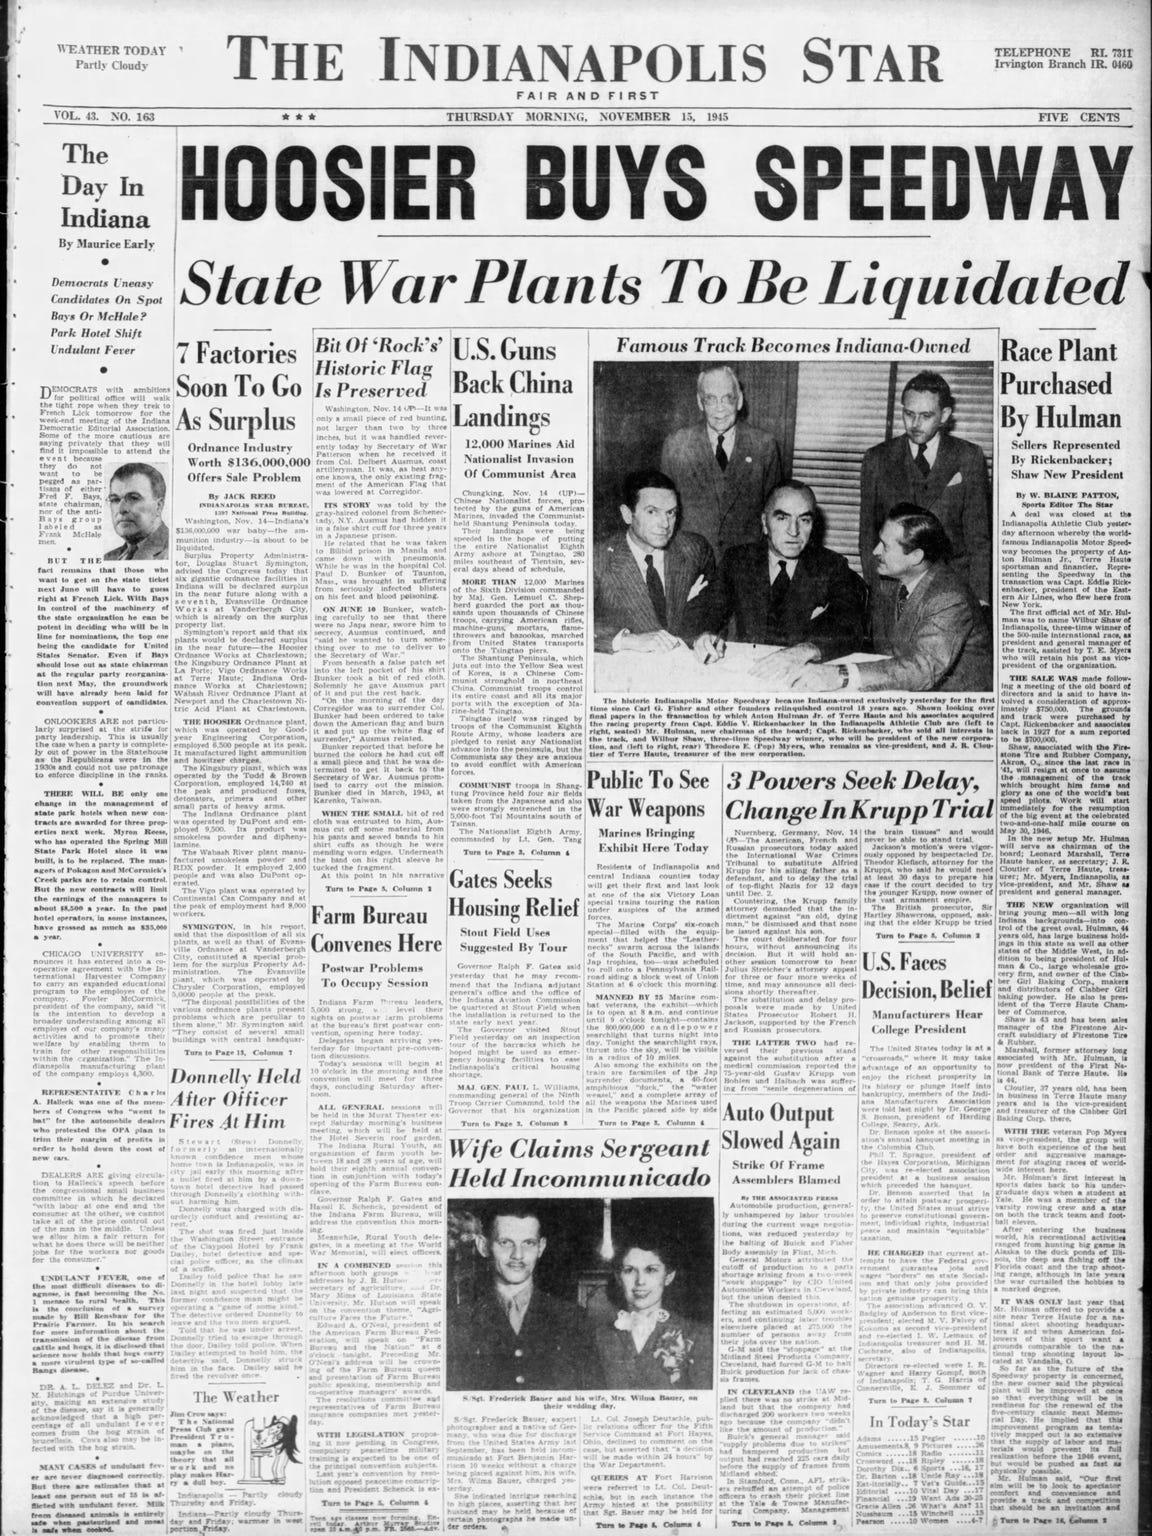 The Nov. 15, 1945, IndyStar announces the purchase